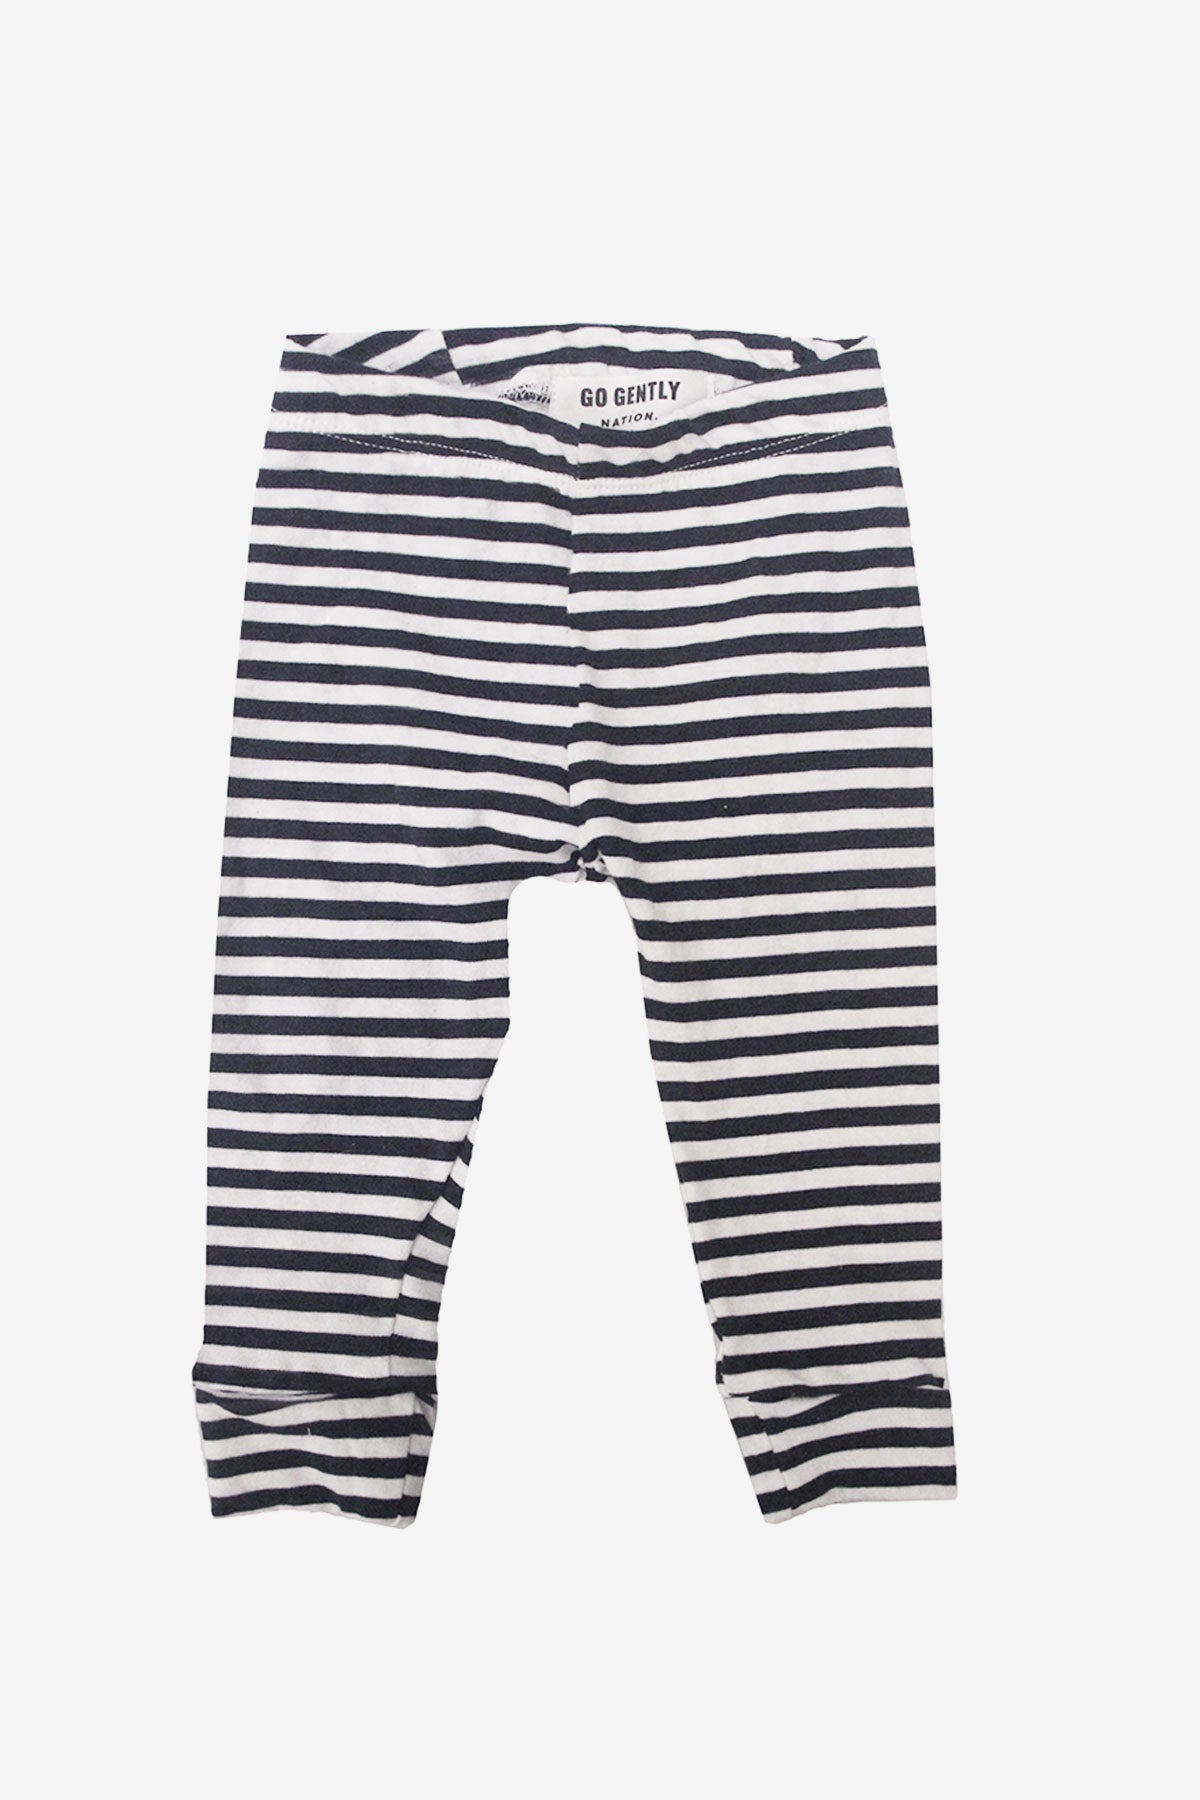 Go Gently Nation Pencil Pant - Navy Stripe